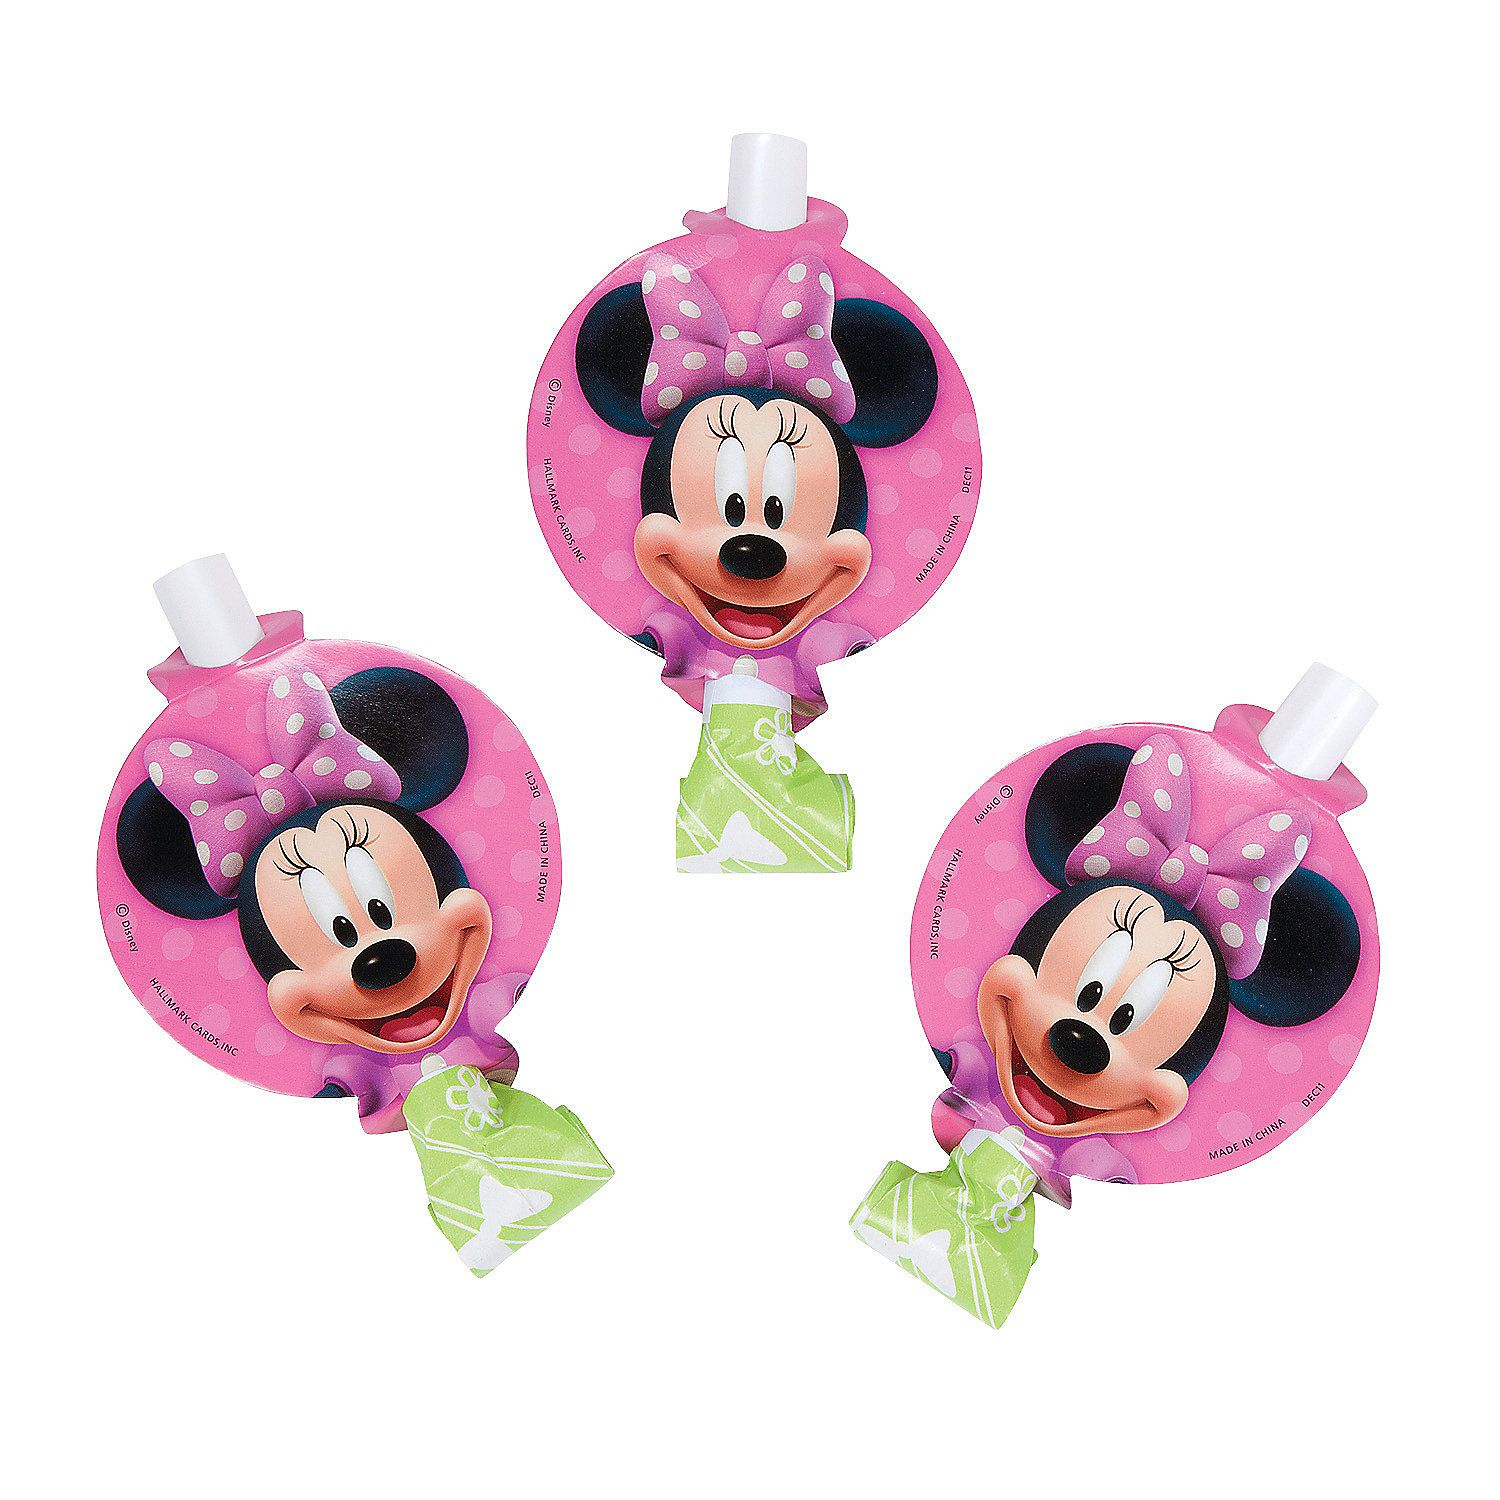 Minnie Mouse's Bow-Tique Blowouts - OrientalTrading.com